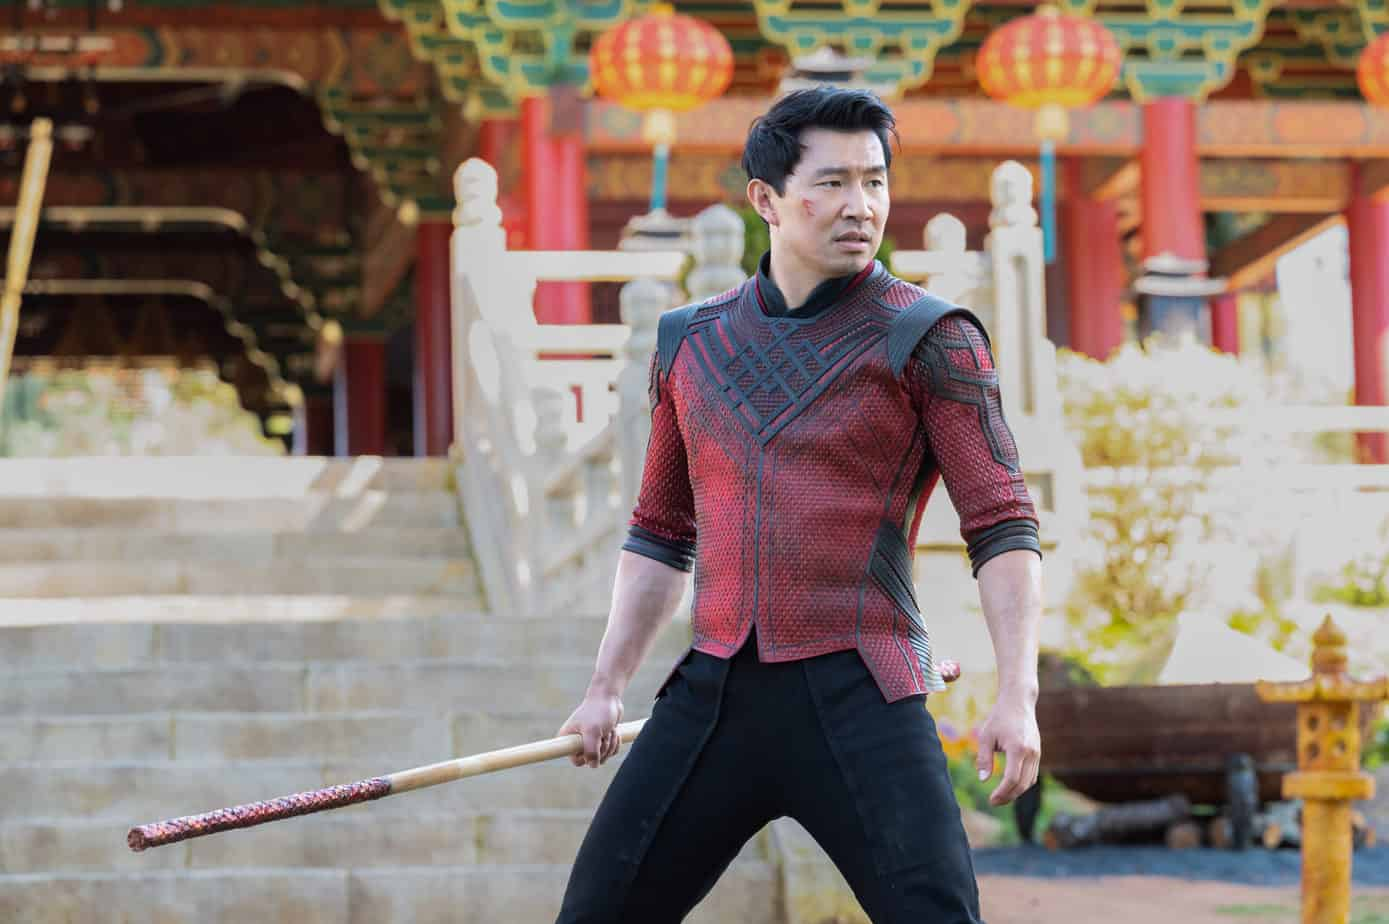 Is it kid friendly? Parent Guide for SHANG-CHI AND THE LEGEND OF THE TEN RINGS